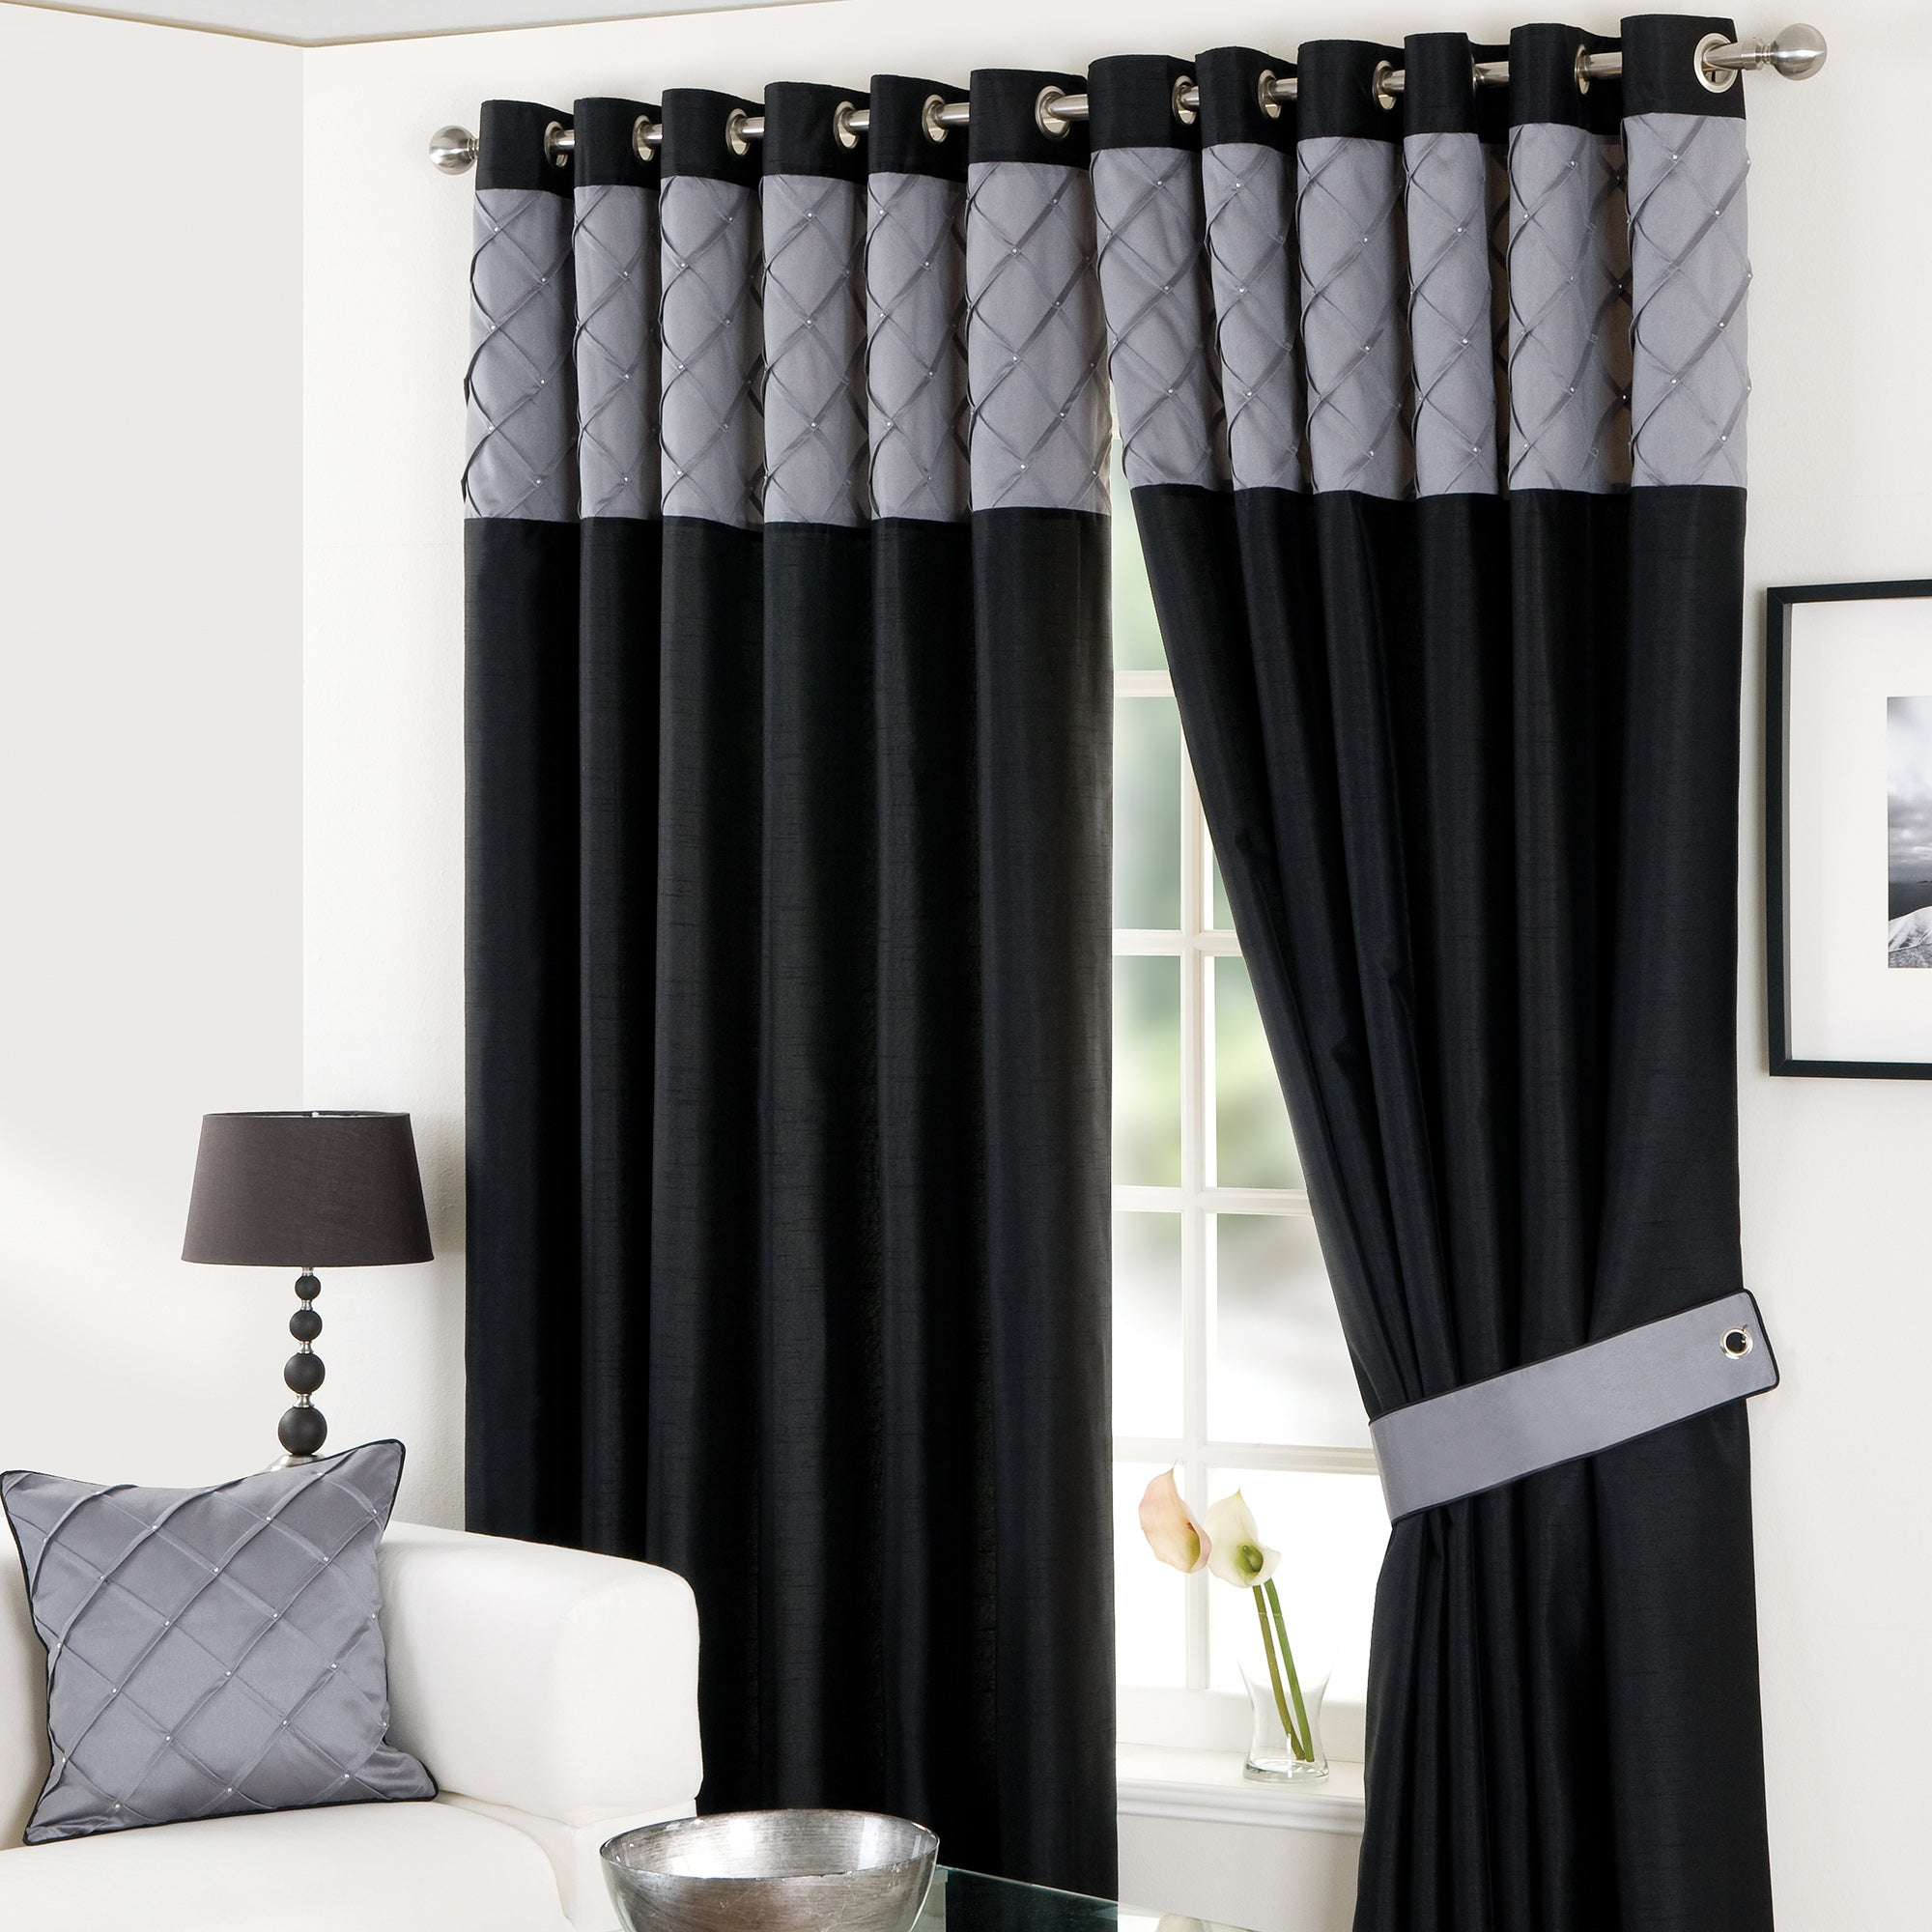 Black Parisian Eyelet Curtain Collection